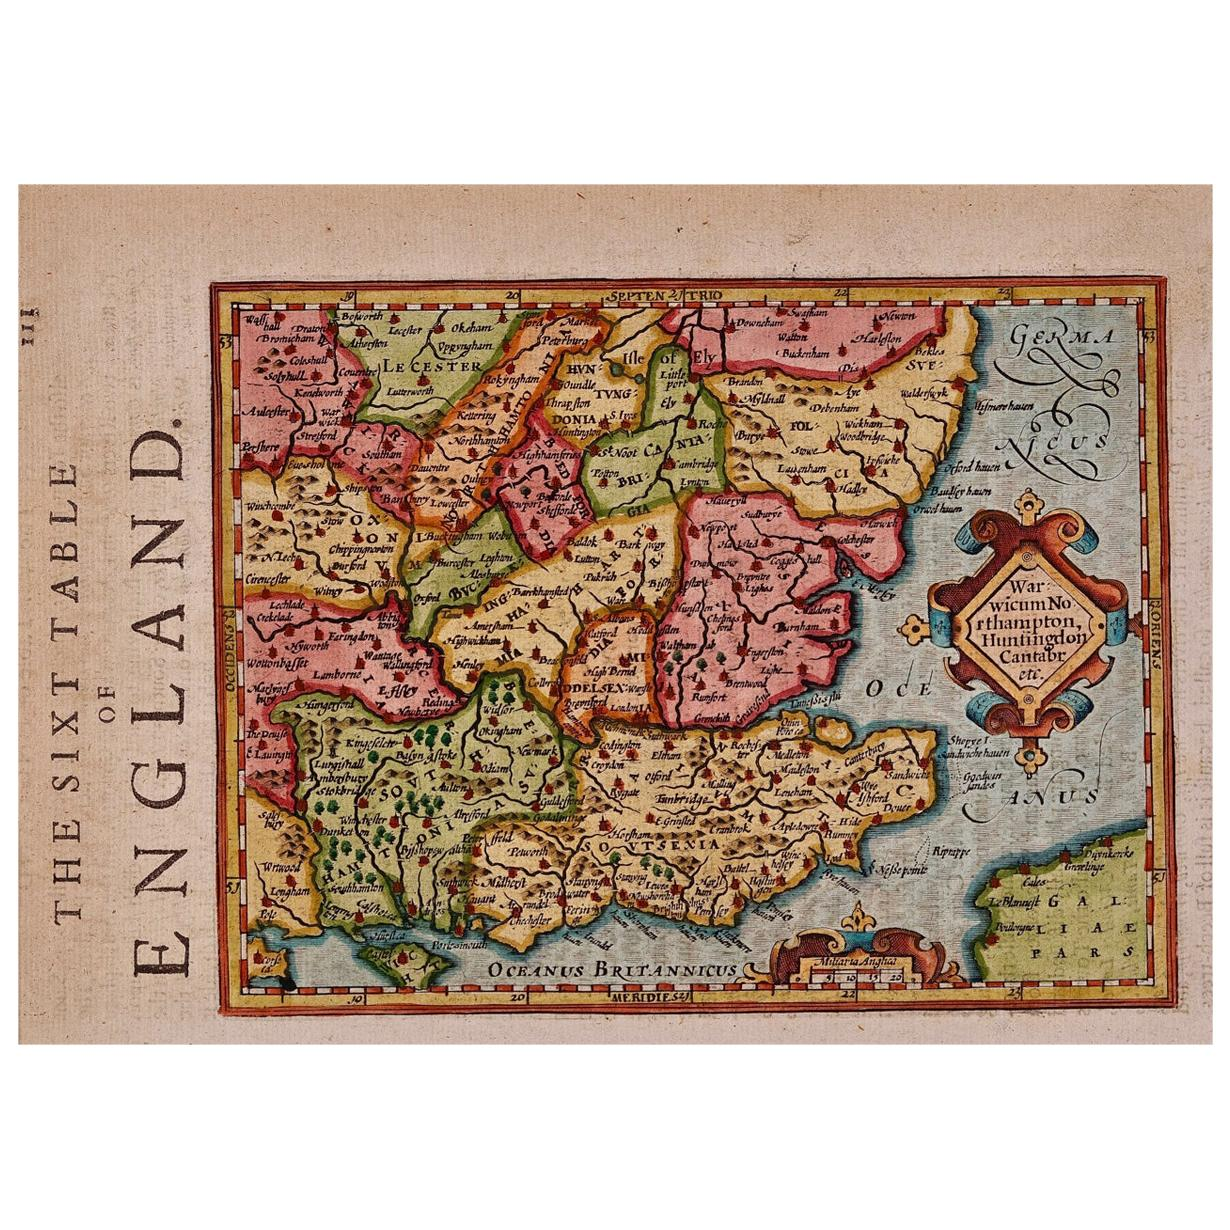 17th Century Hand-Colored Map of Southeastern England by Mercator and Hondius